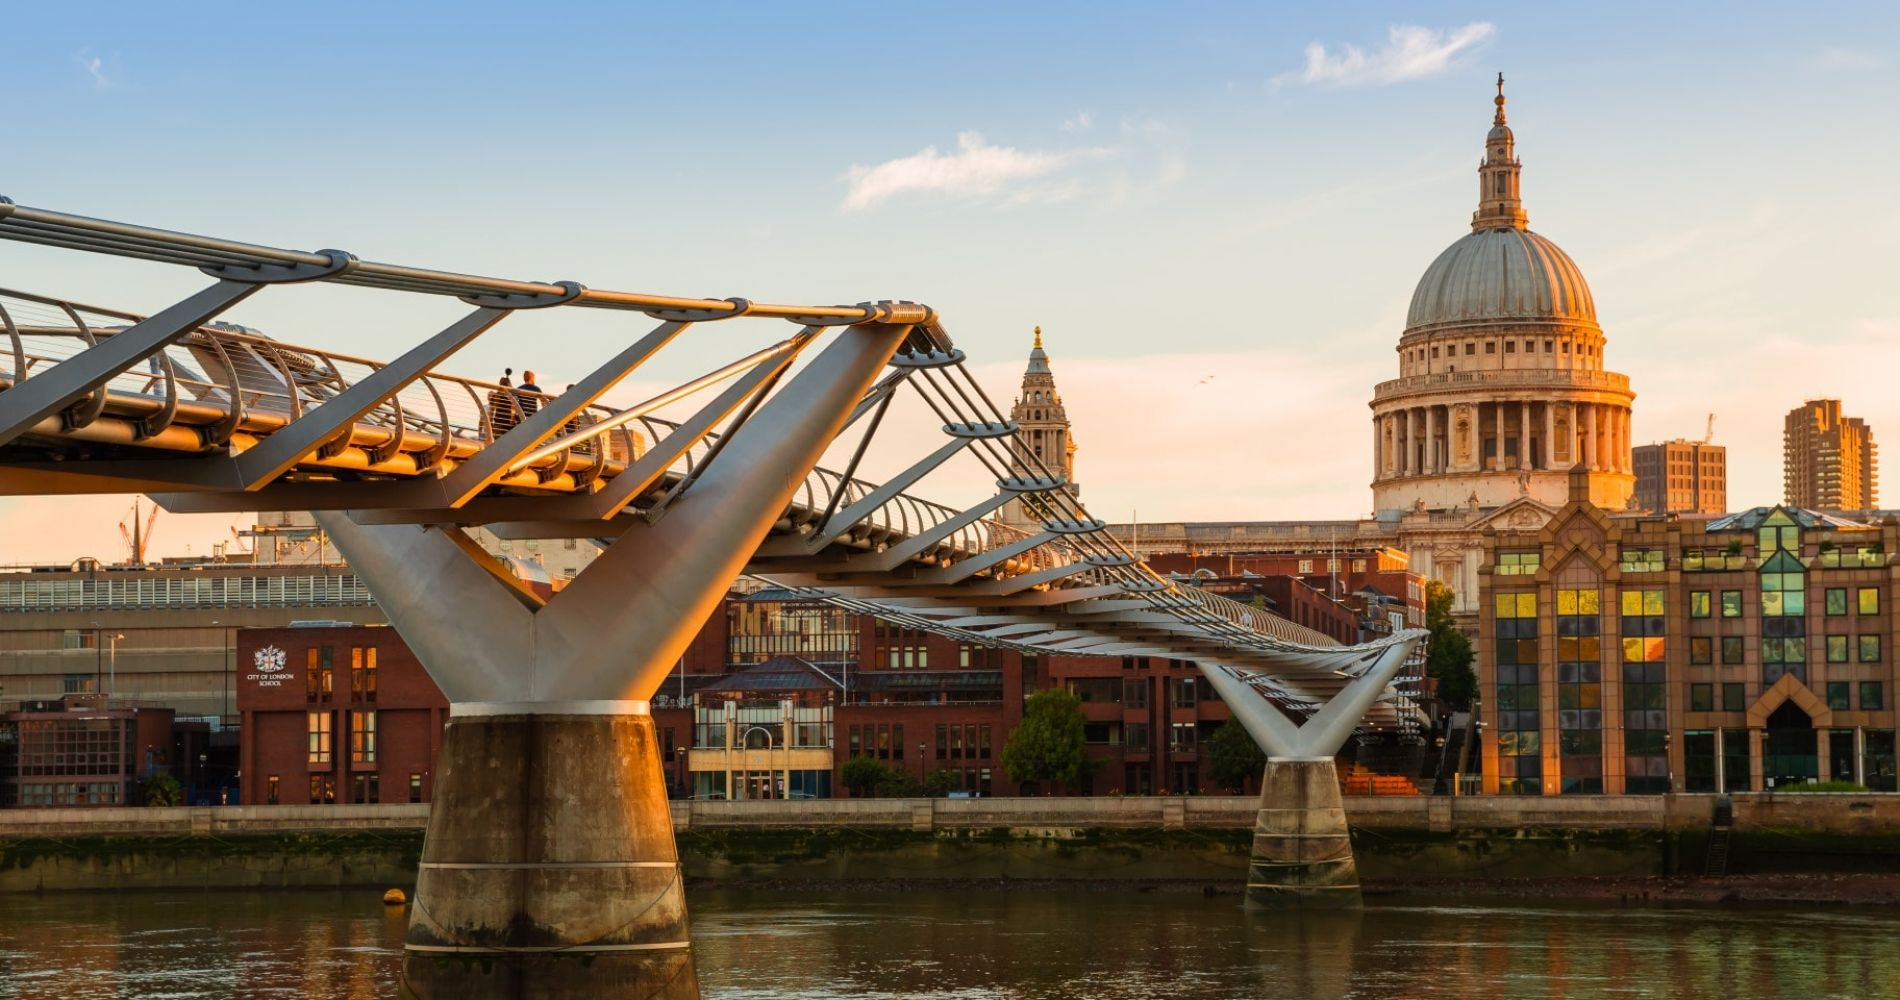 Visit London with St Paul's Cathedral